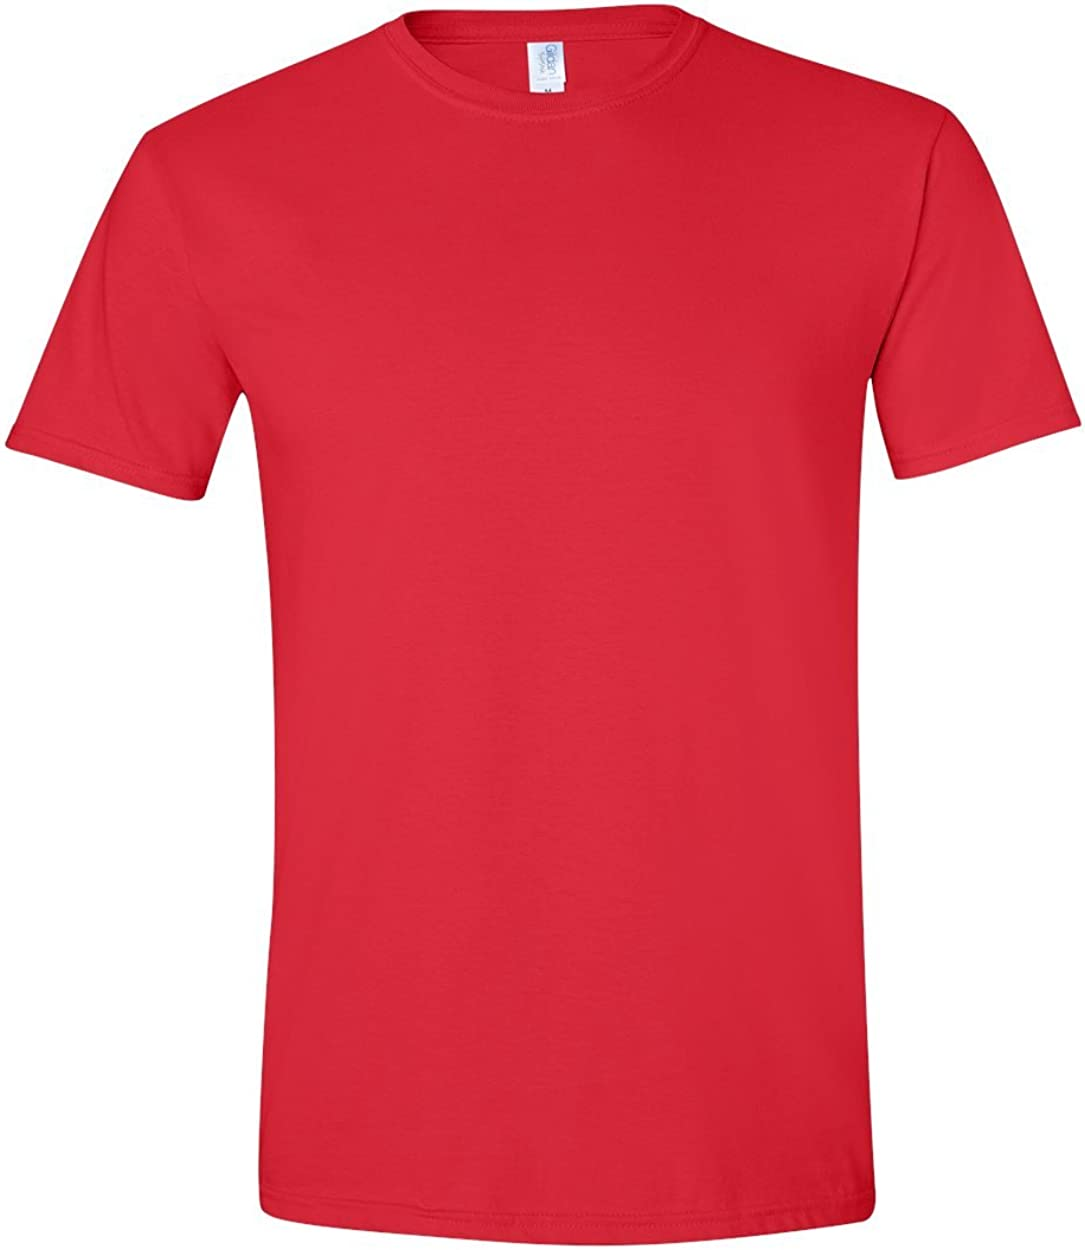 4.5 oz. T-Shirt (G640) Red, S (Pack of 12)